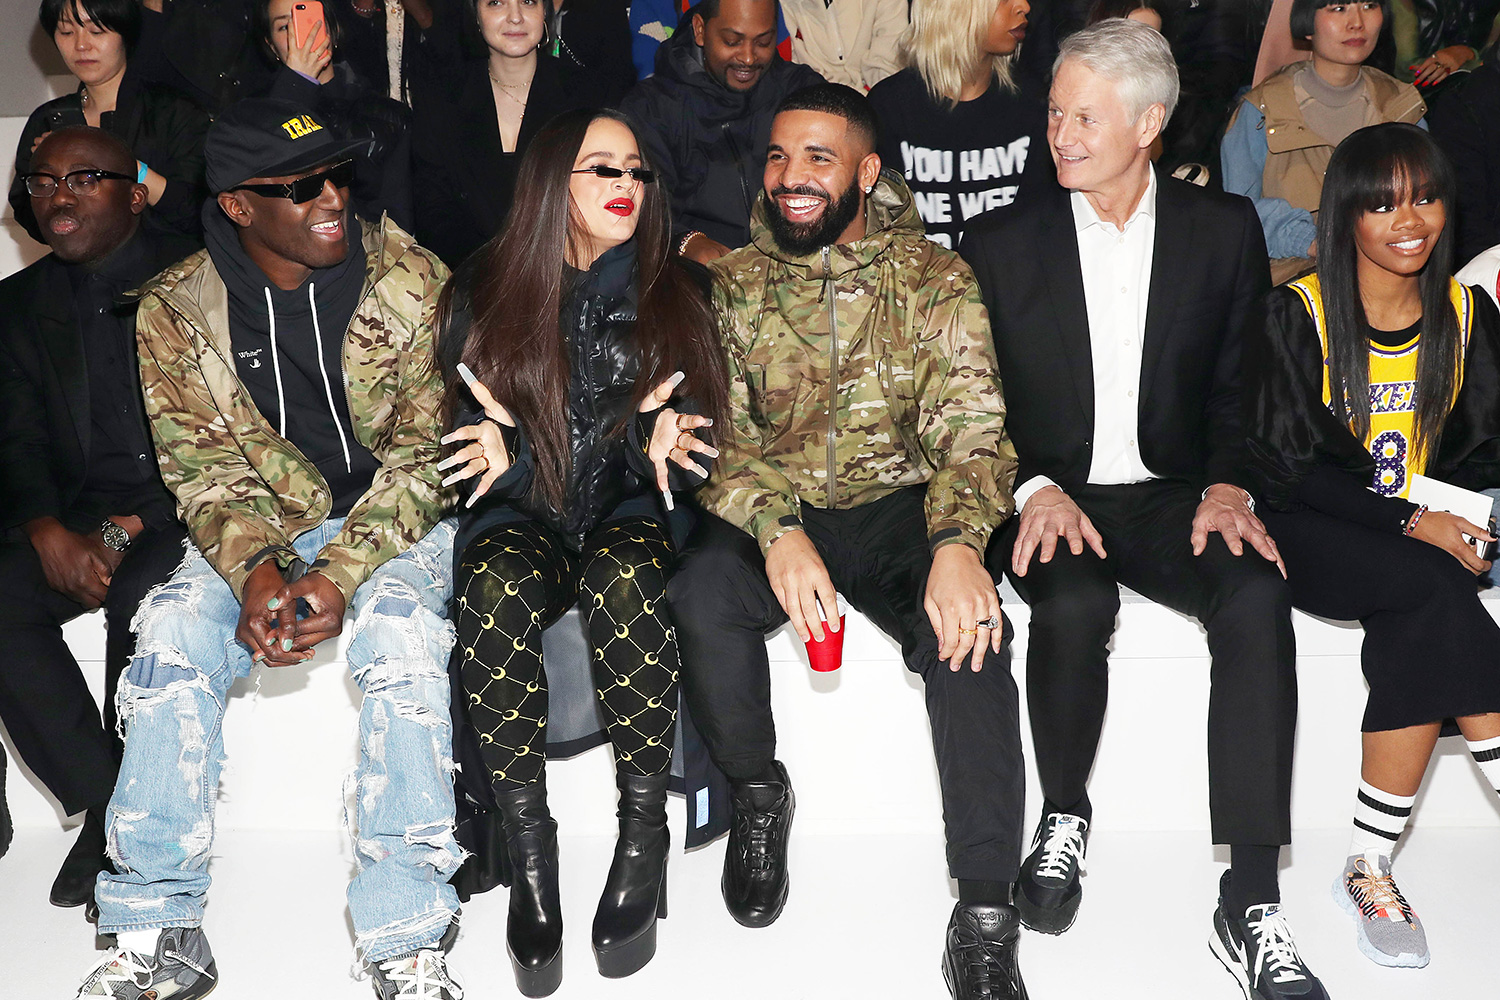 Edward Enninful, Virgil Abloh, Rosalia, Drake, John Donahoe, and Gabby Douglas attend the 2020 Tokyo Olympic collection fashion show at The Shed on February 05, 2020 in New York City